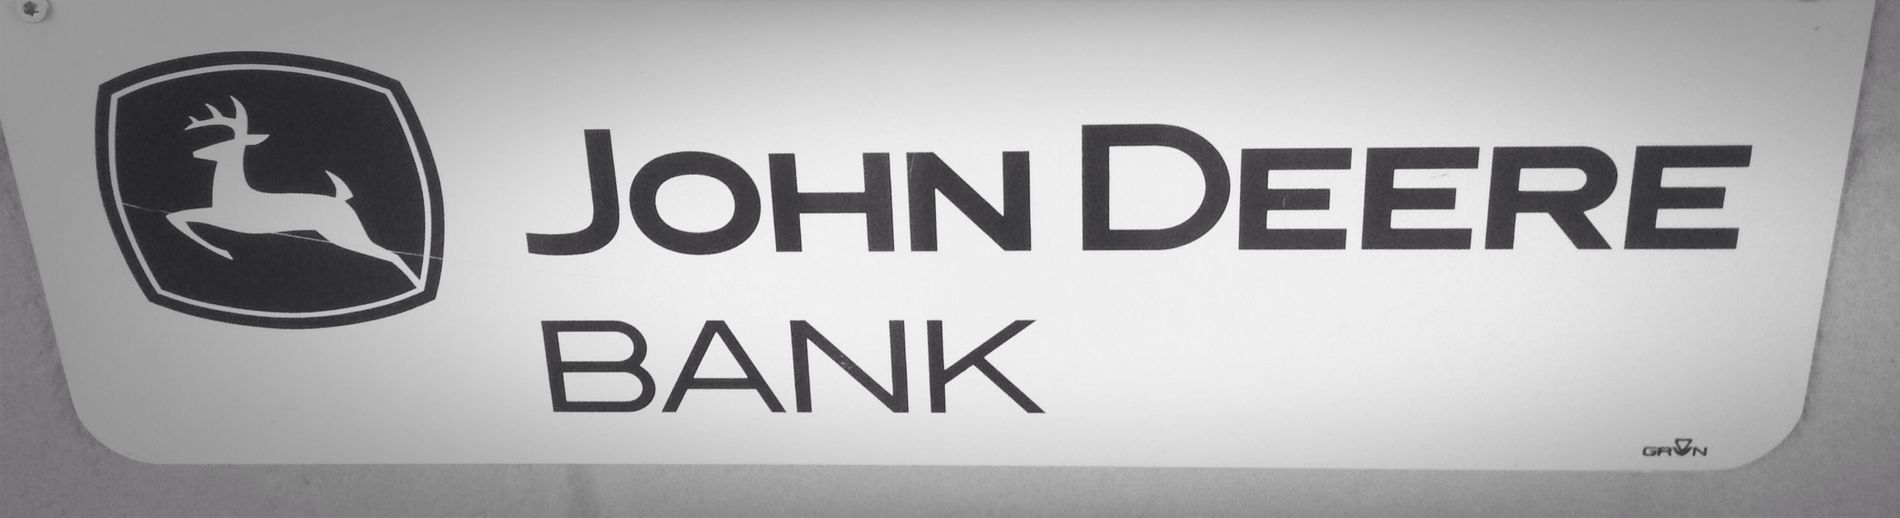 I think I know where @ntone keeps his money... ;-) John Deere Bank